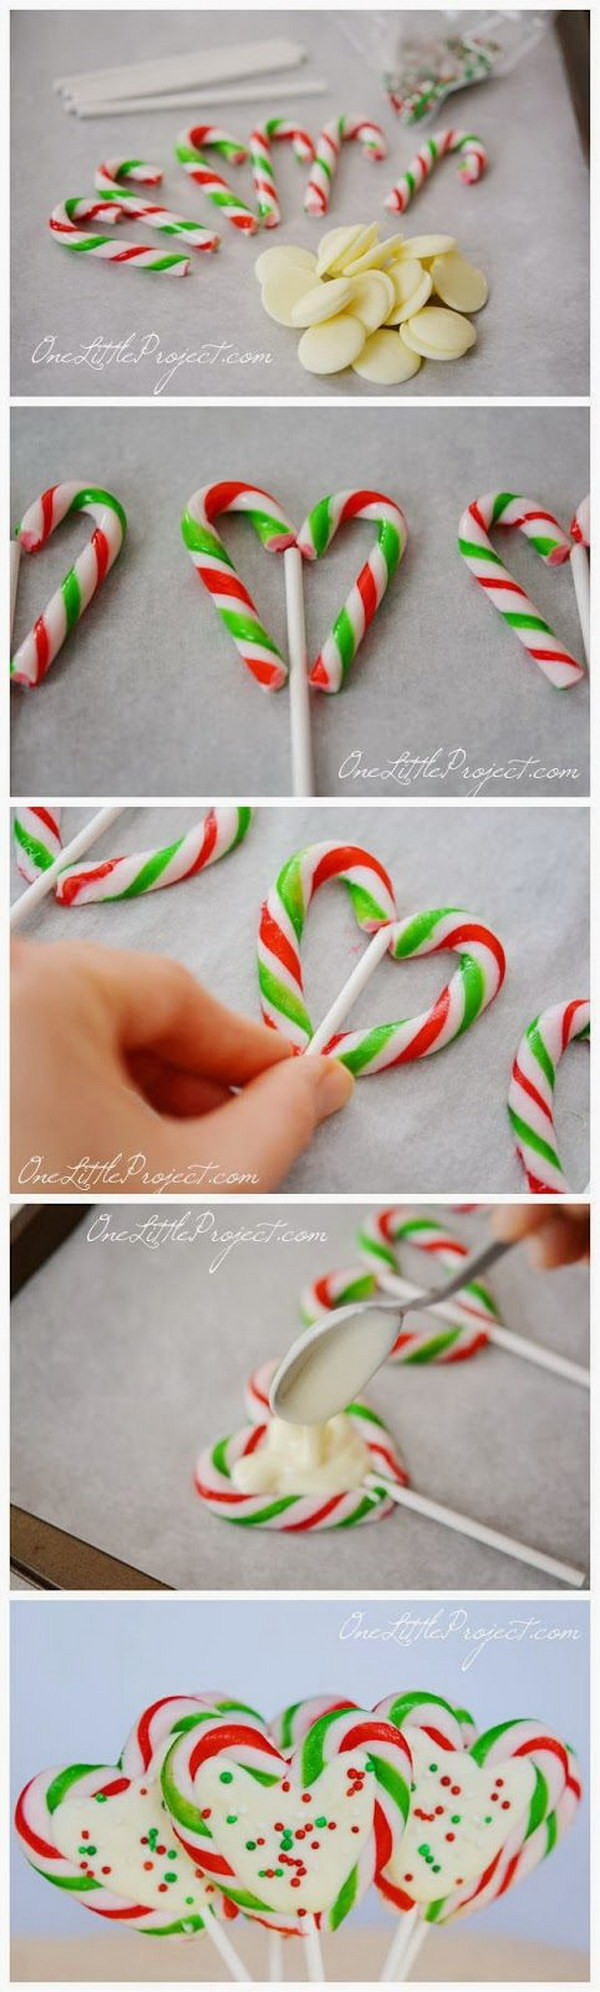 Best ideas about Creative Candy Gift Ideas . Save or Pin Creative Candy Gift Ideas for This Holiday Now.